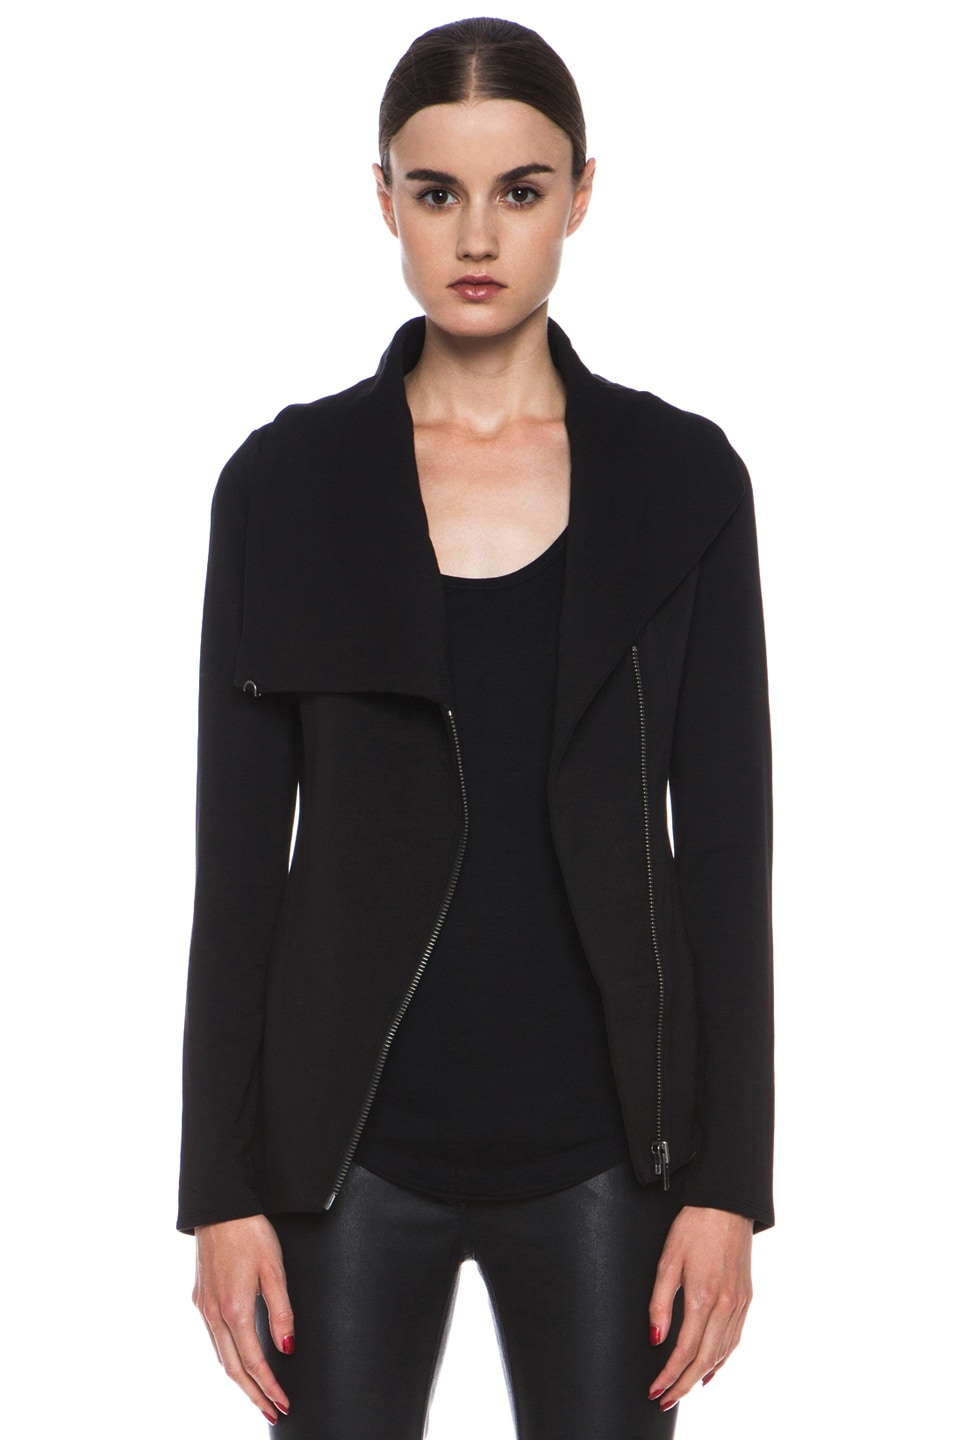 Image 1 of HELMUT Helmut Lang Villus Zip Up Sweatshirt Jacket in Black